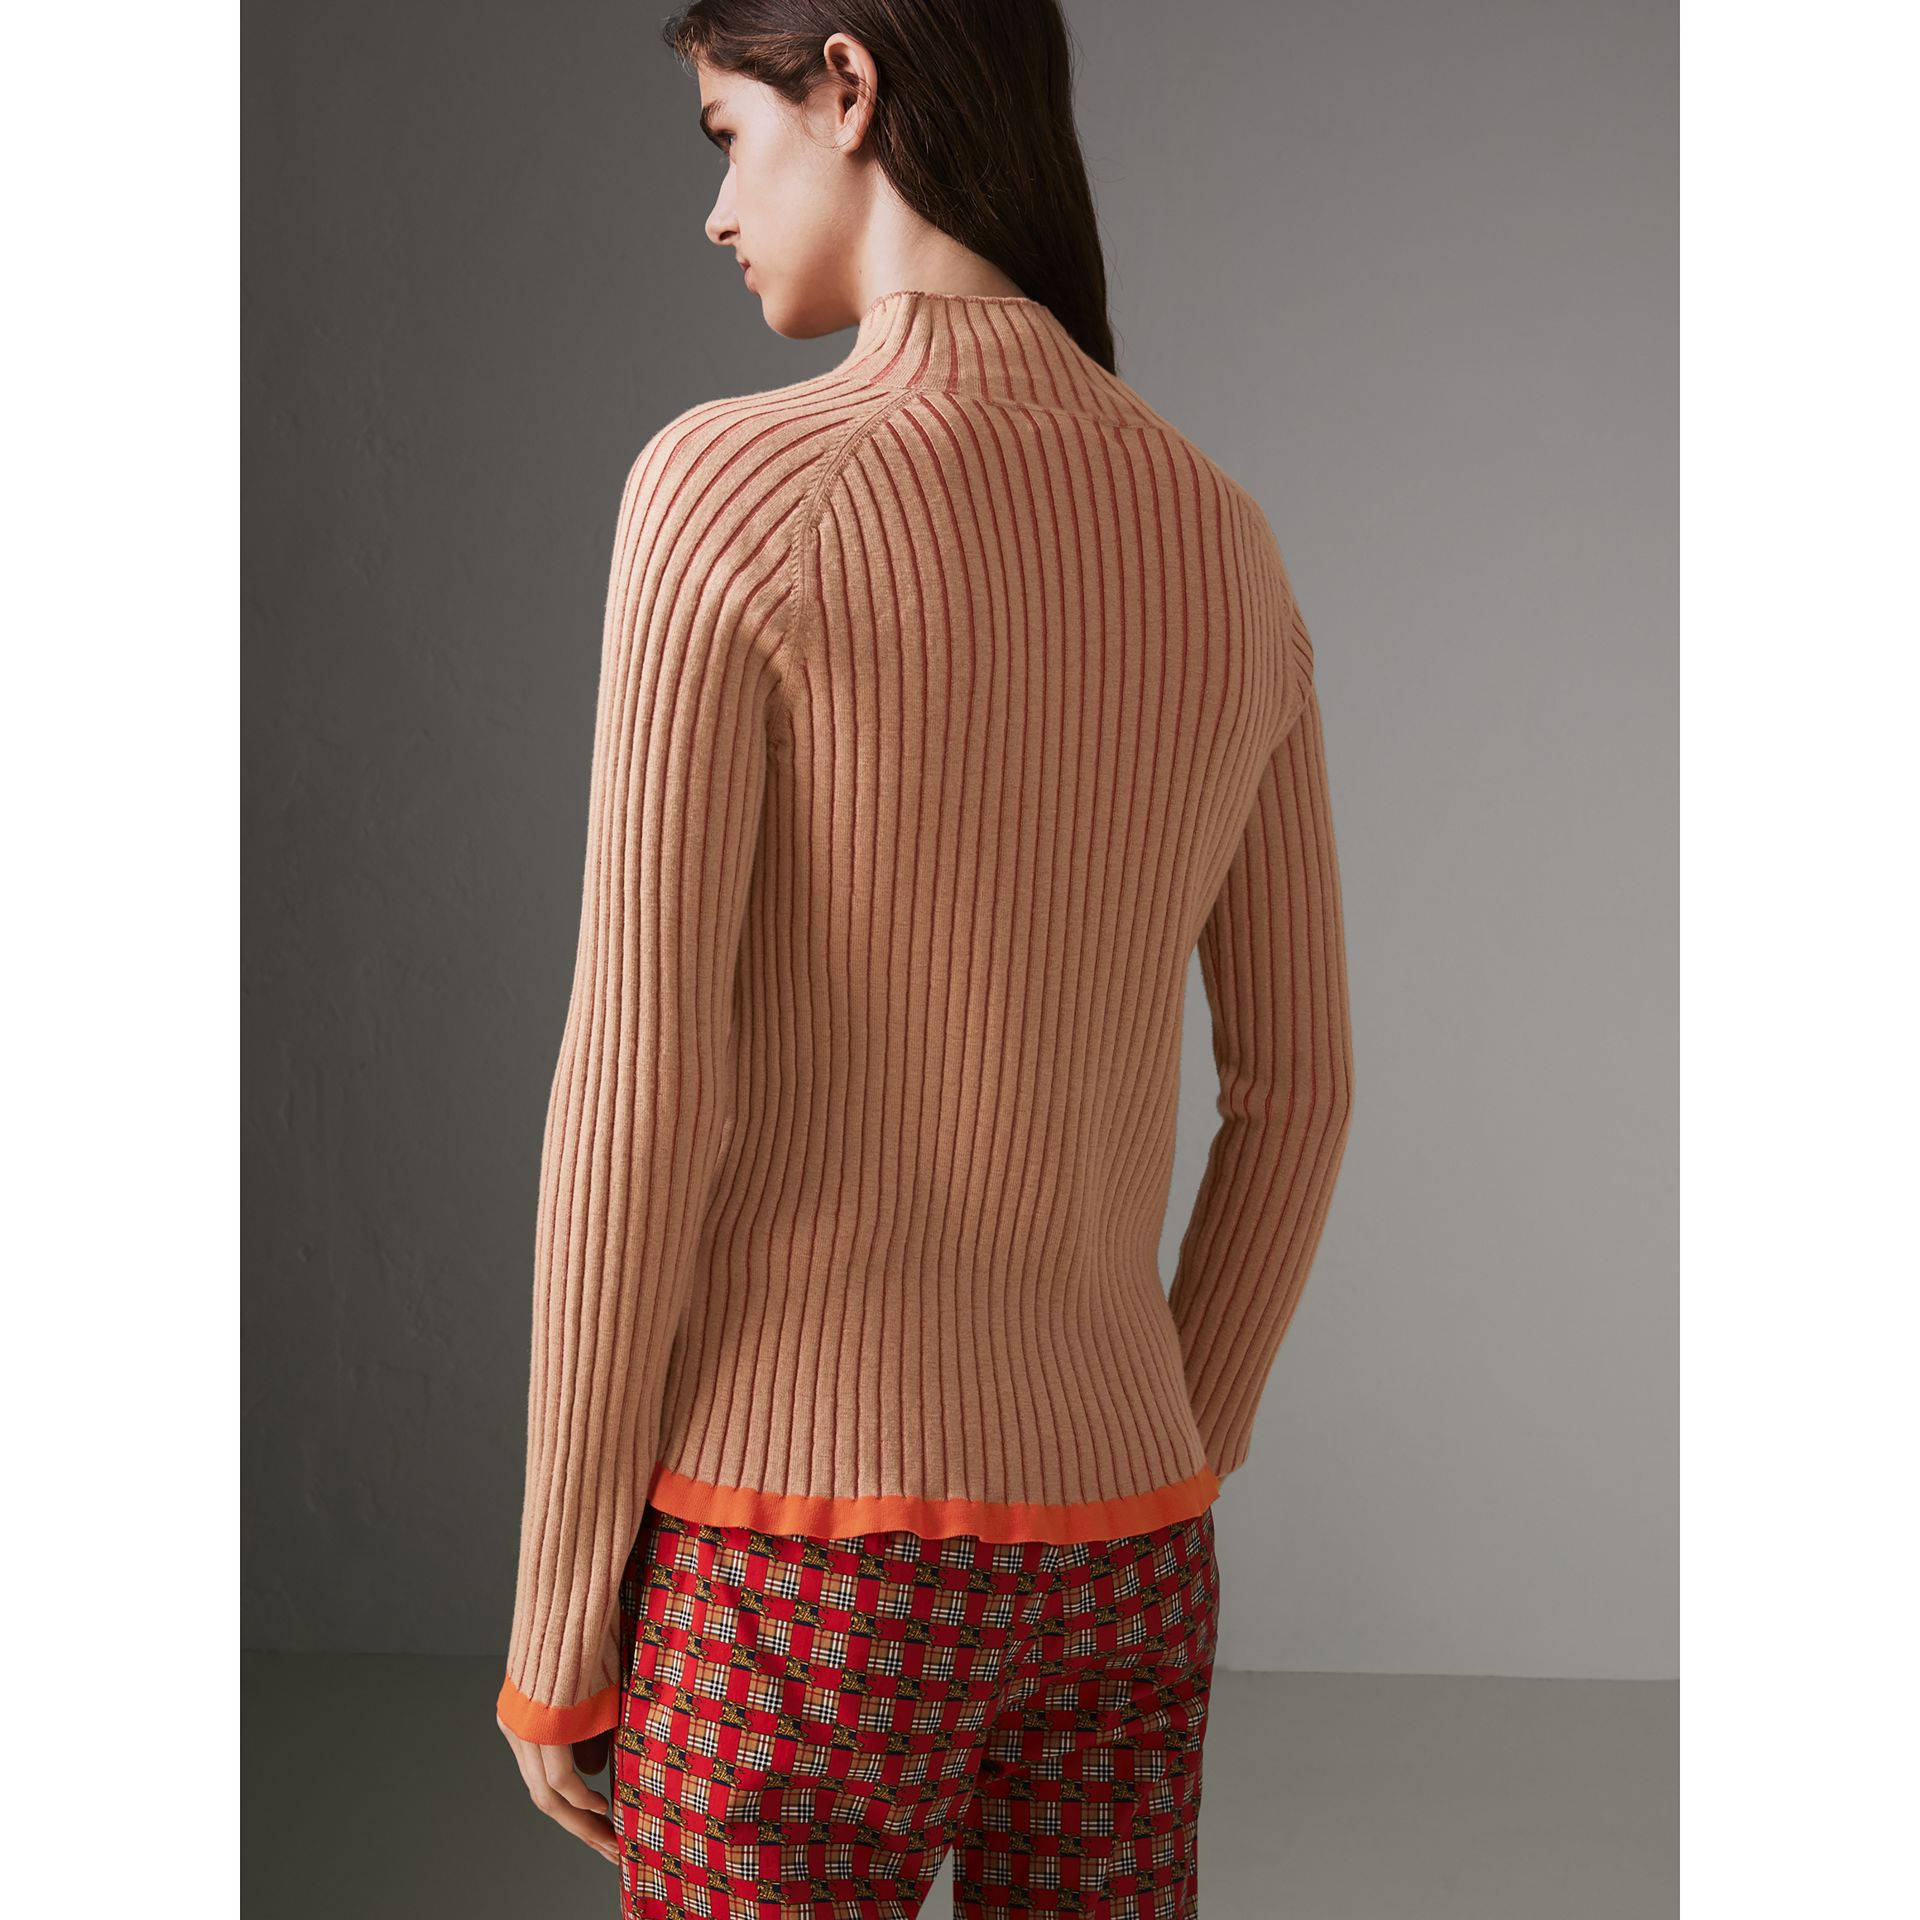 Silk Cashmere Turtleneck Sweater in Sand Brown - Women | Burberry United Kingdom - gallery image 2